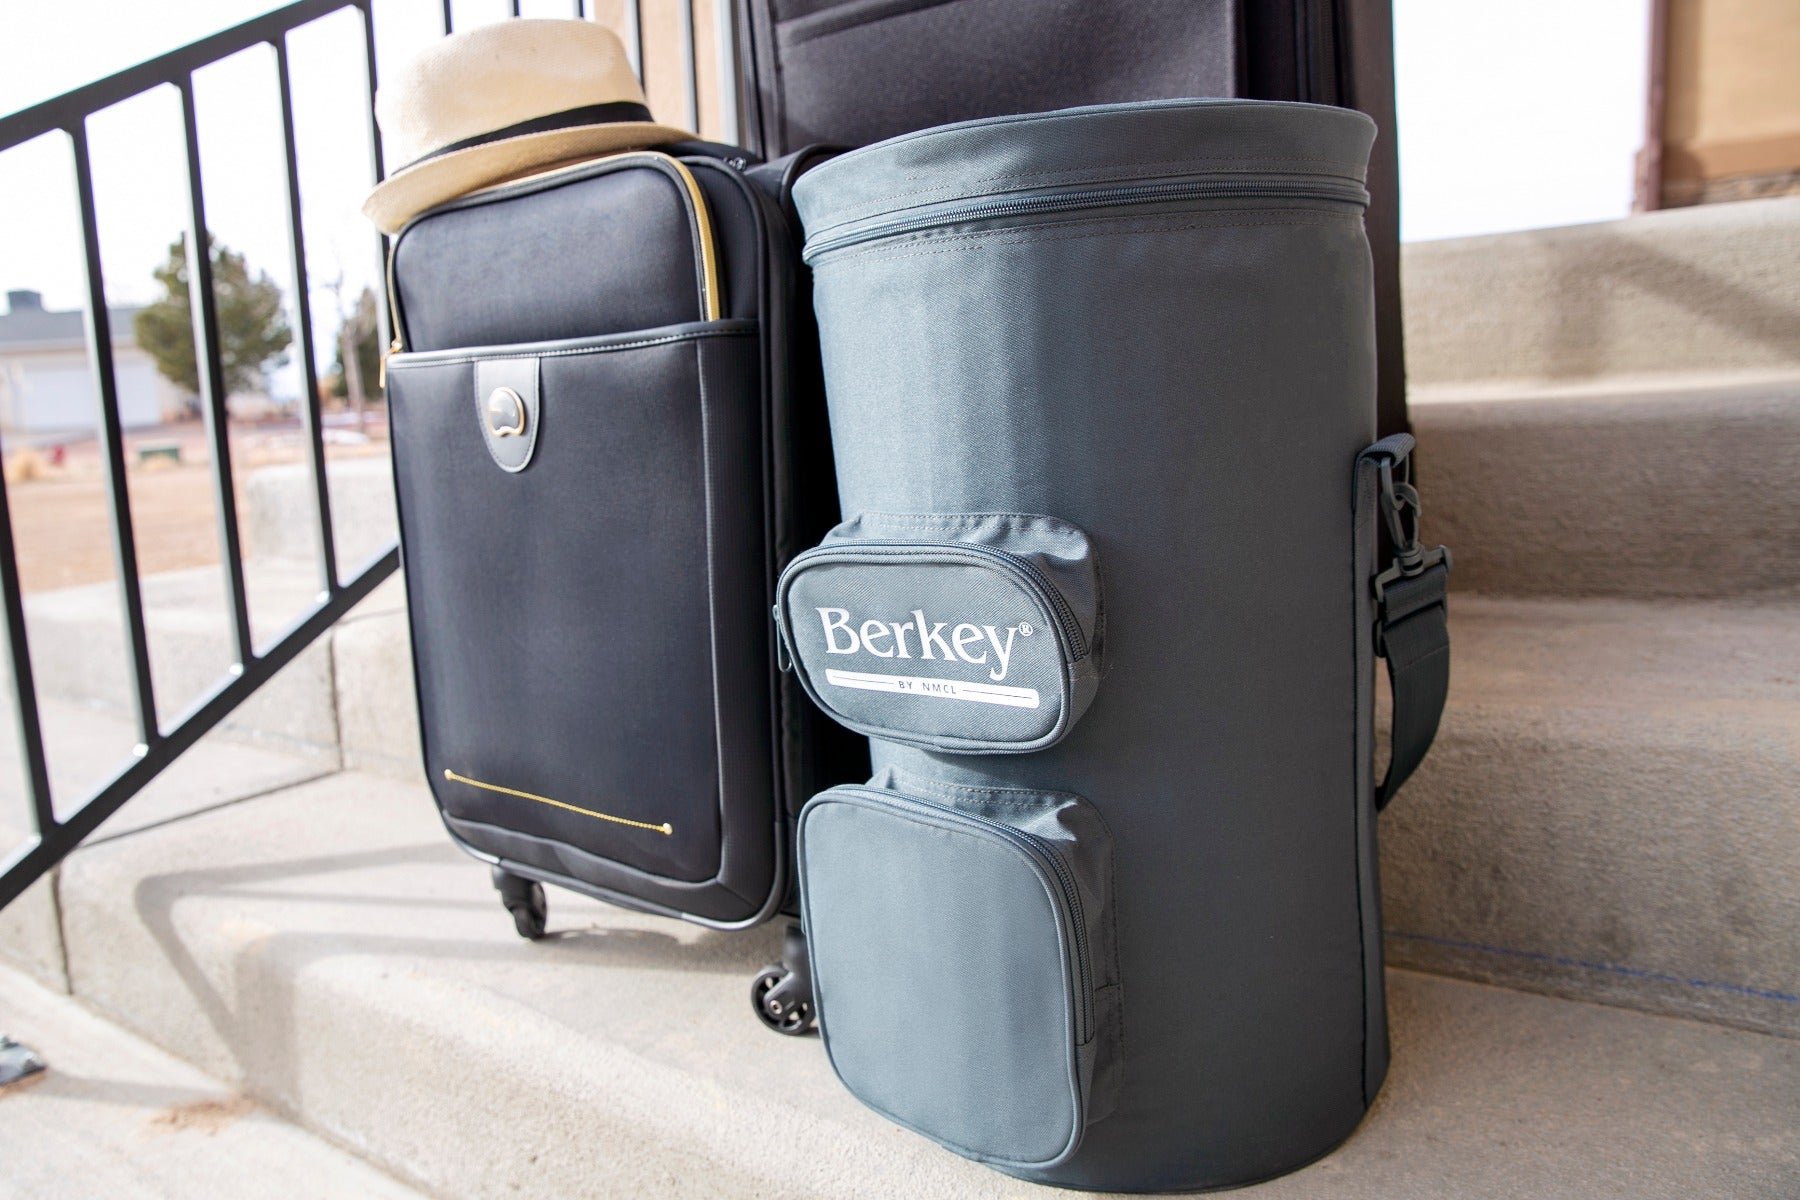 Berkey™ Tote Travel